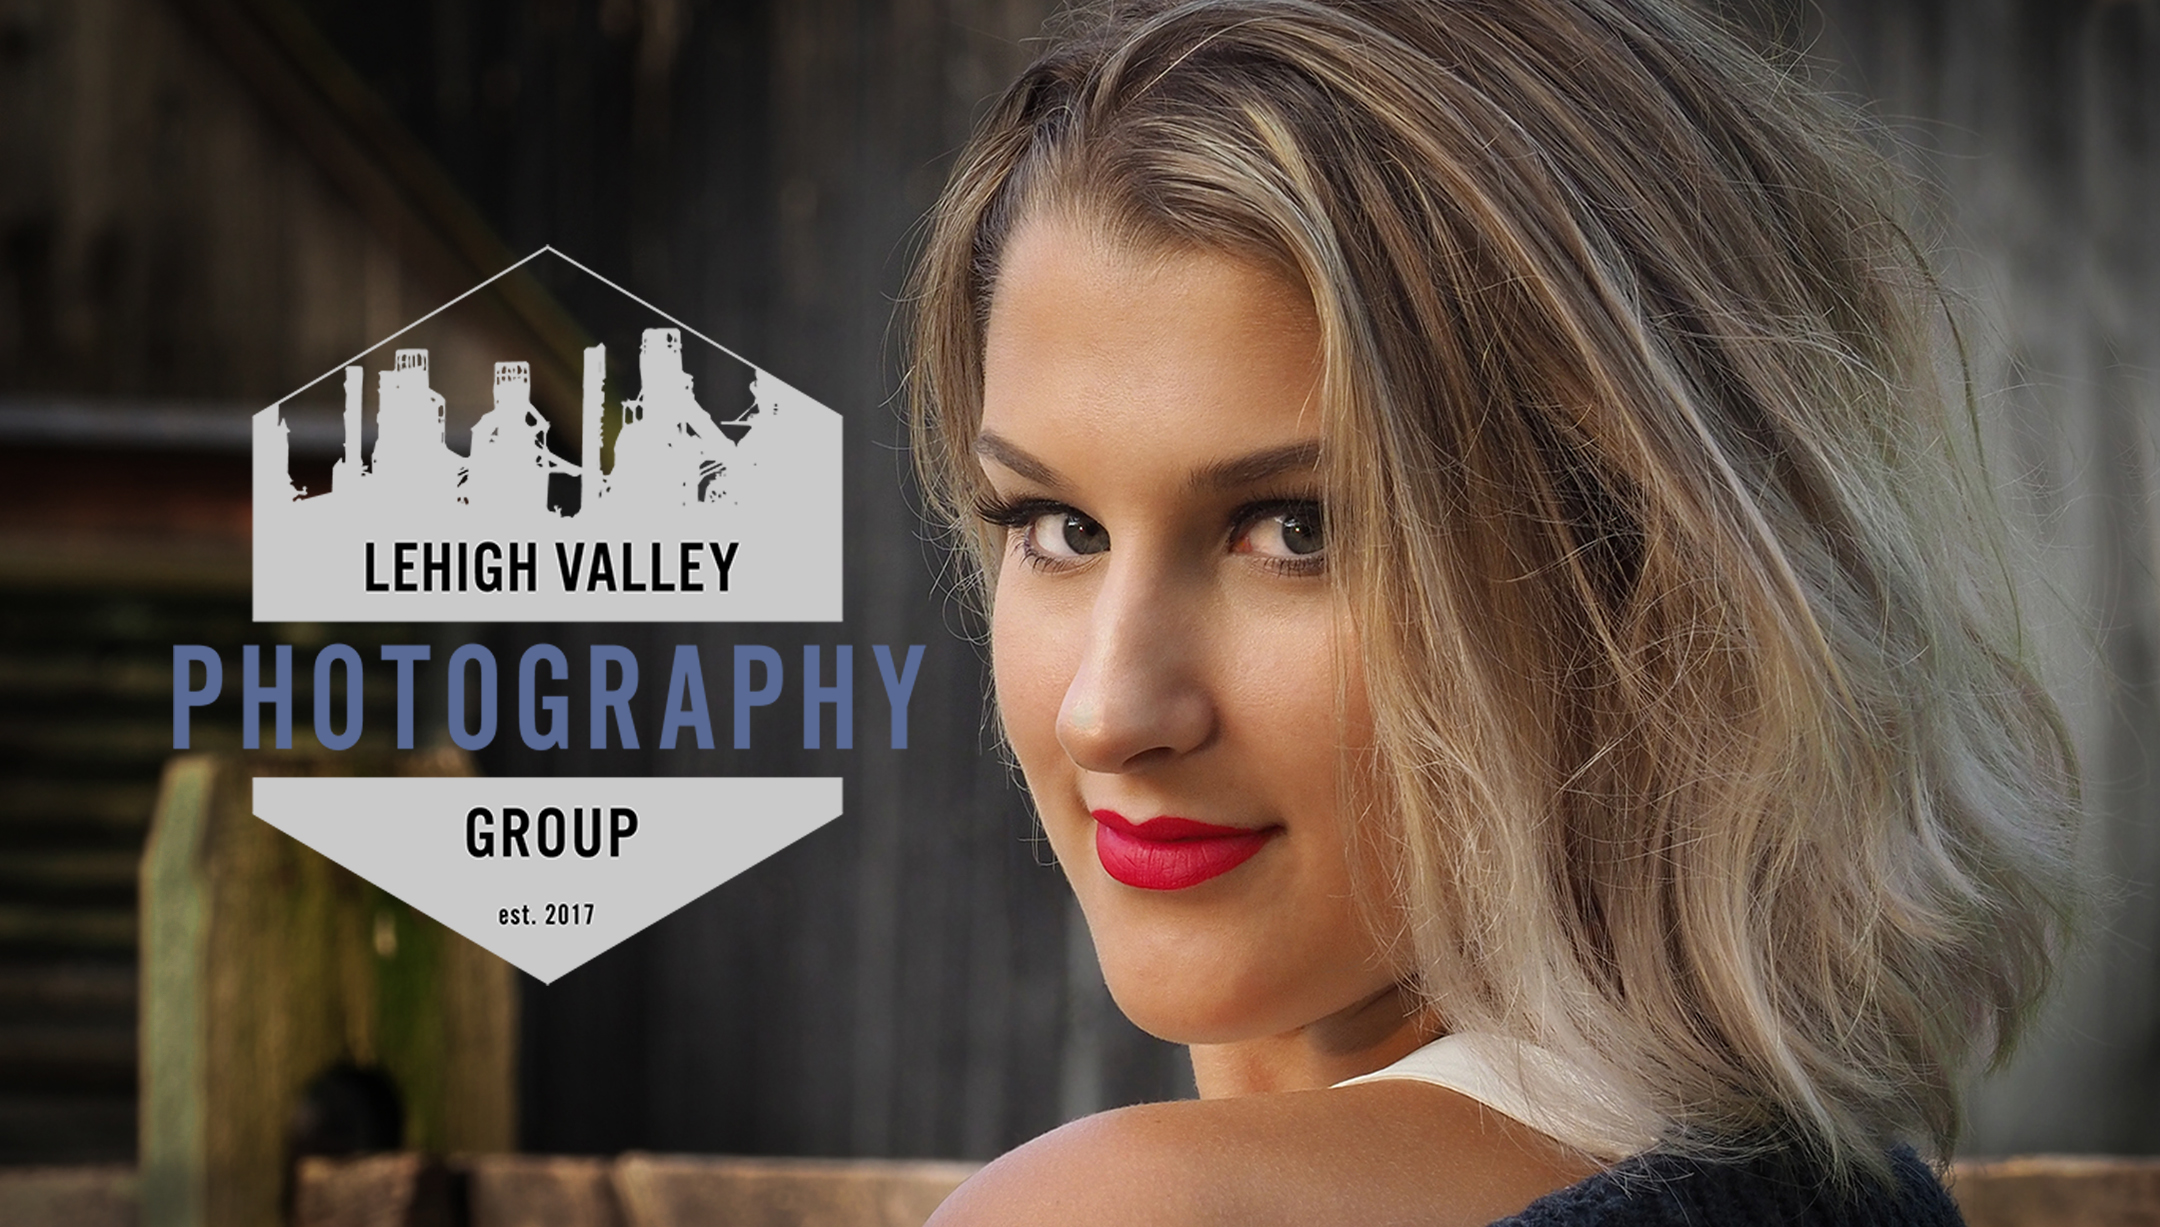 Lehigh Valley Photography Group Photography Contest